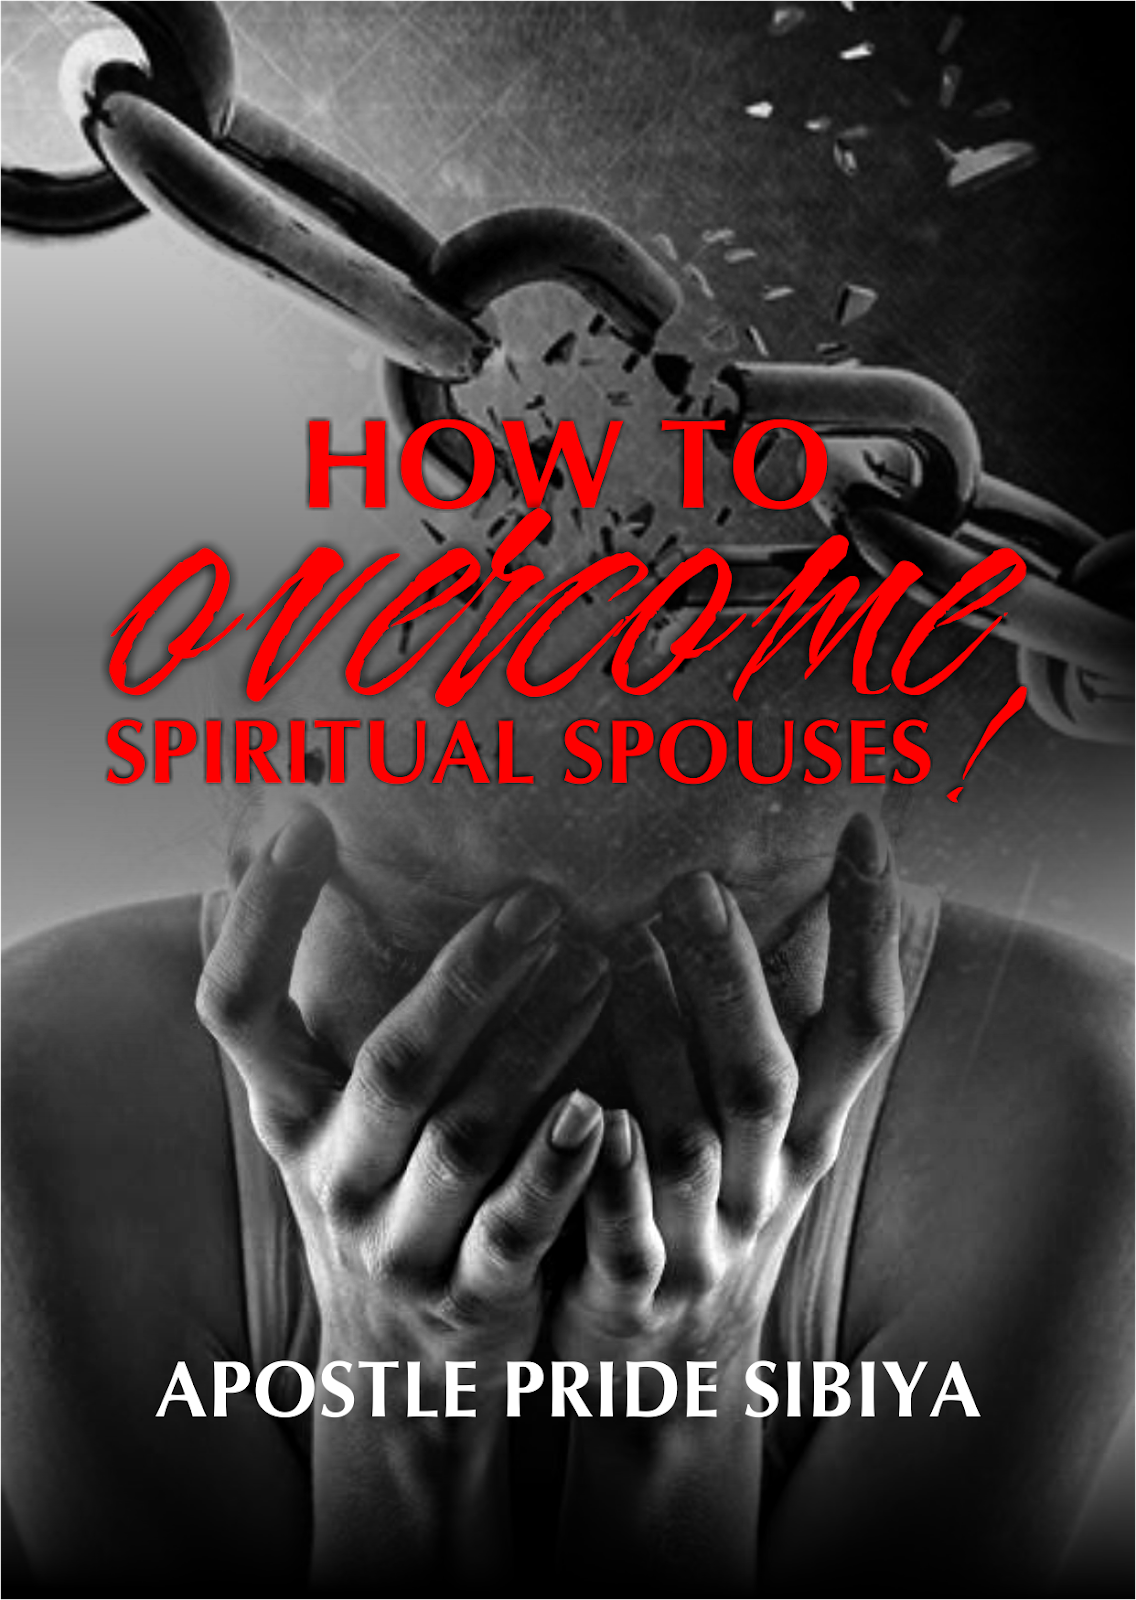 Book -- How To Overcome Spiritual Spouses ... How To Deal With A Spiritual Spouse!